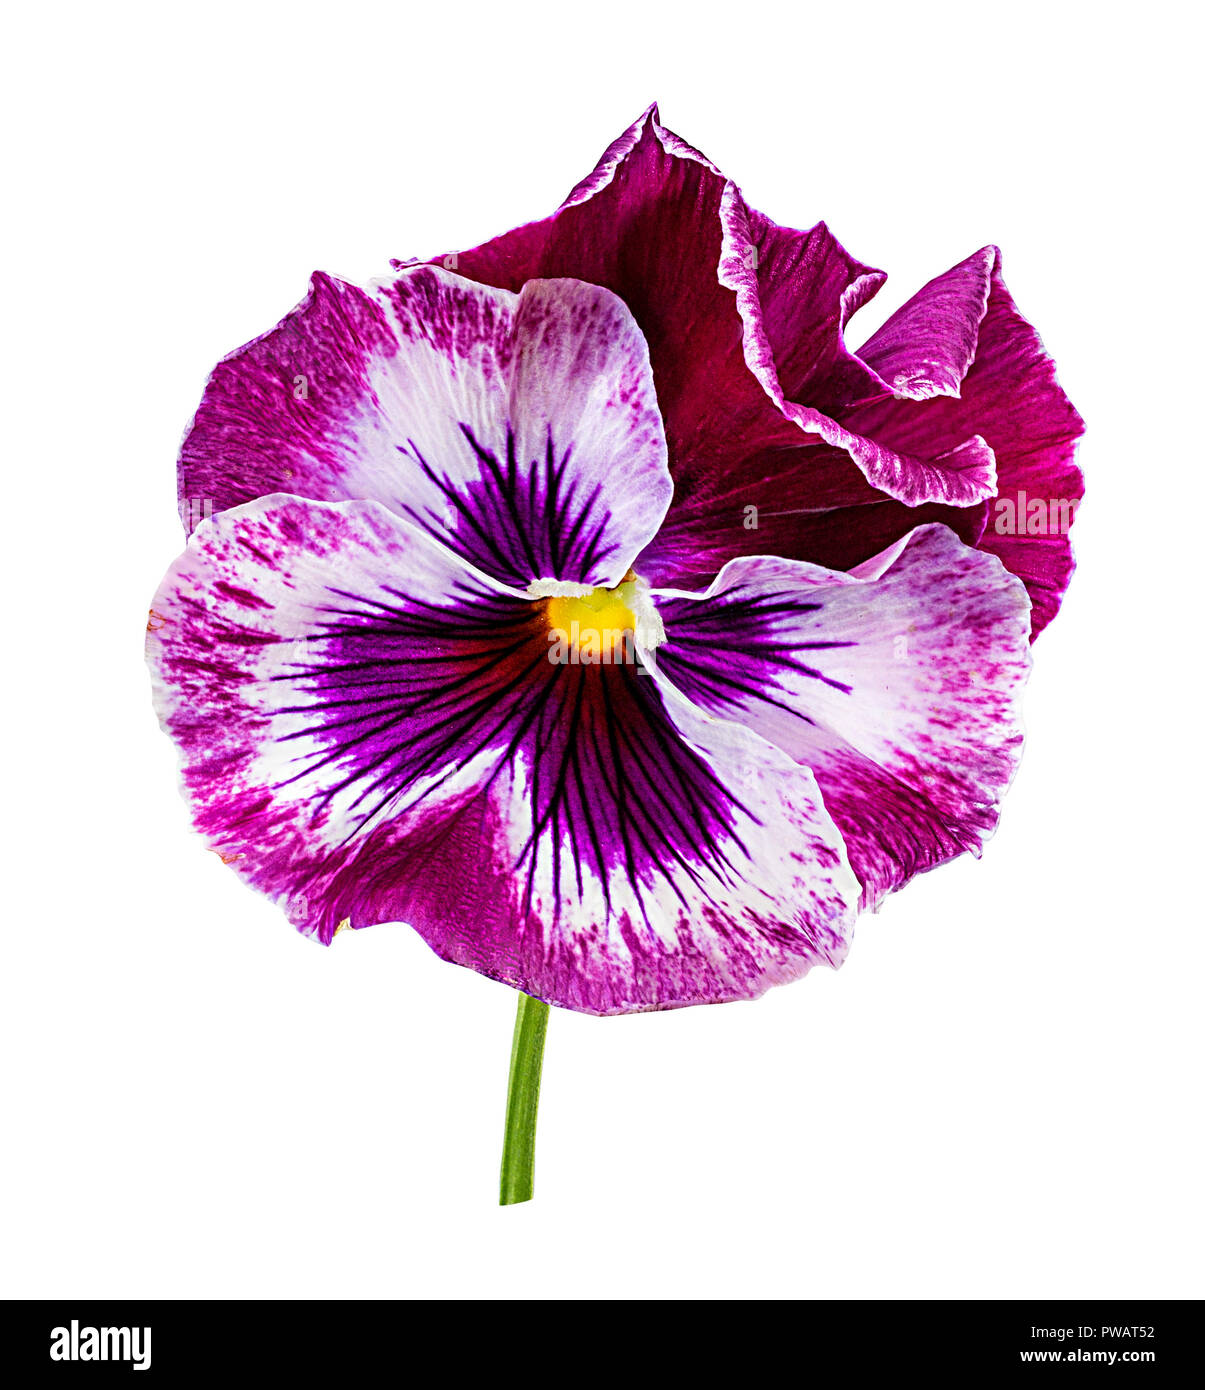 Pansy flowers isolated on white background Stock Photo